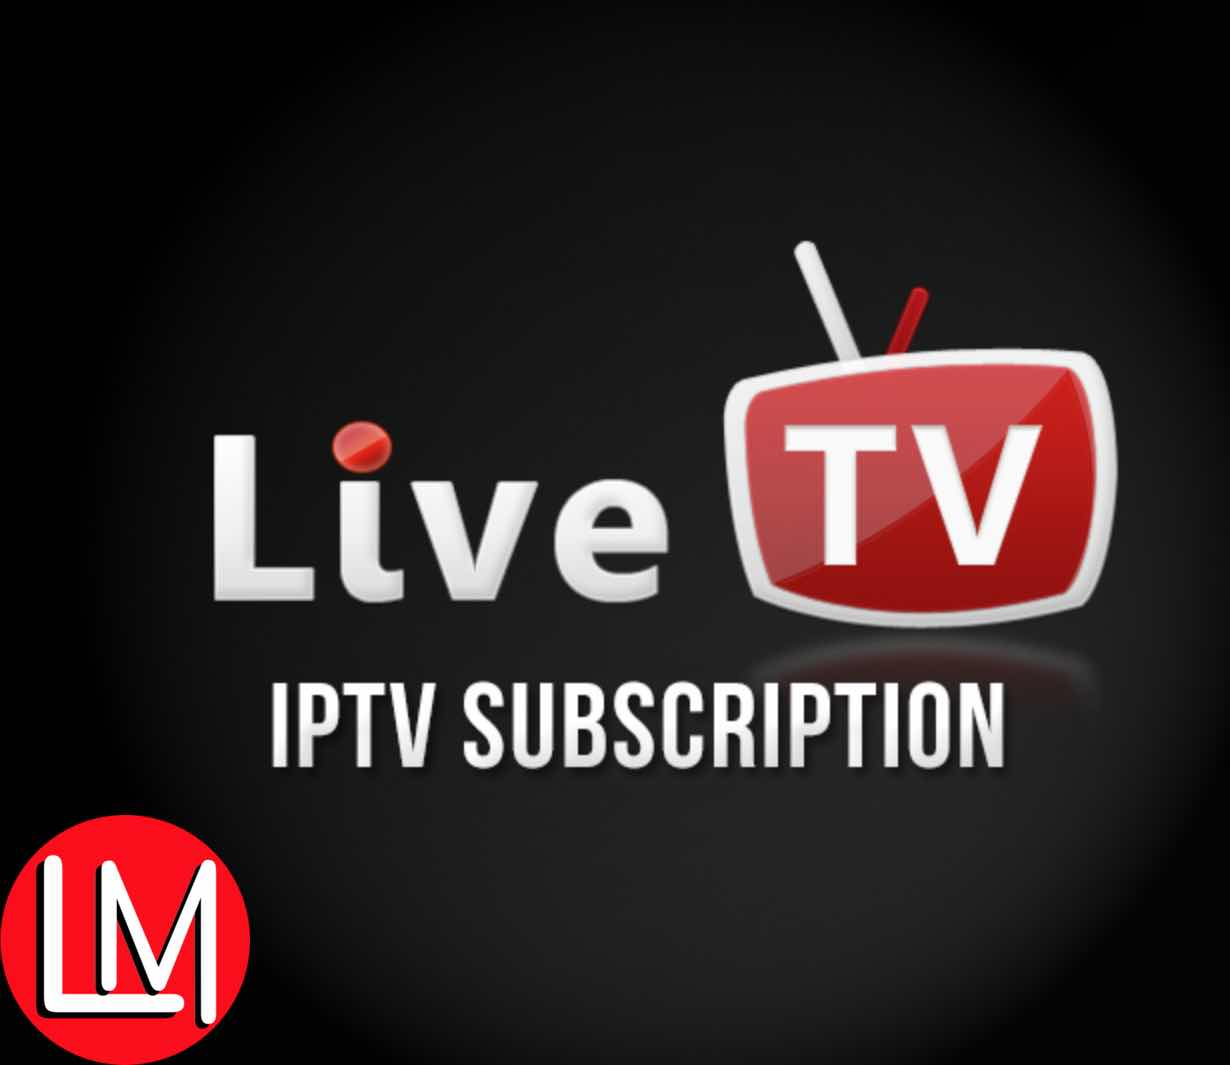 Is IPTV legal? Are Subscriptions to all IPTV Services Legal